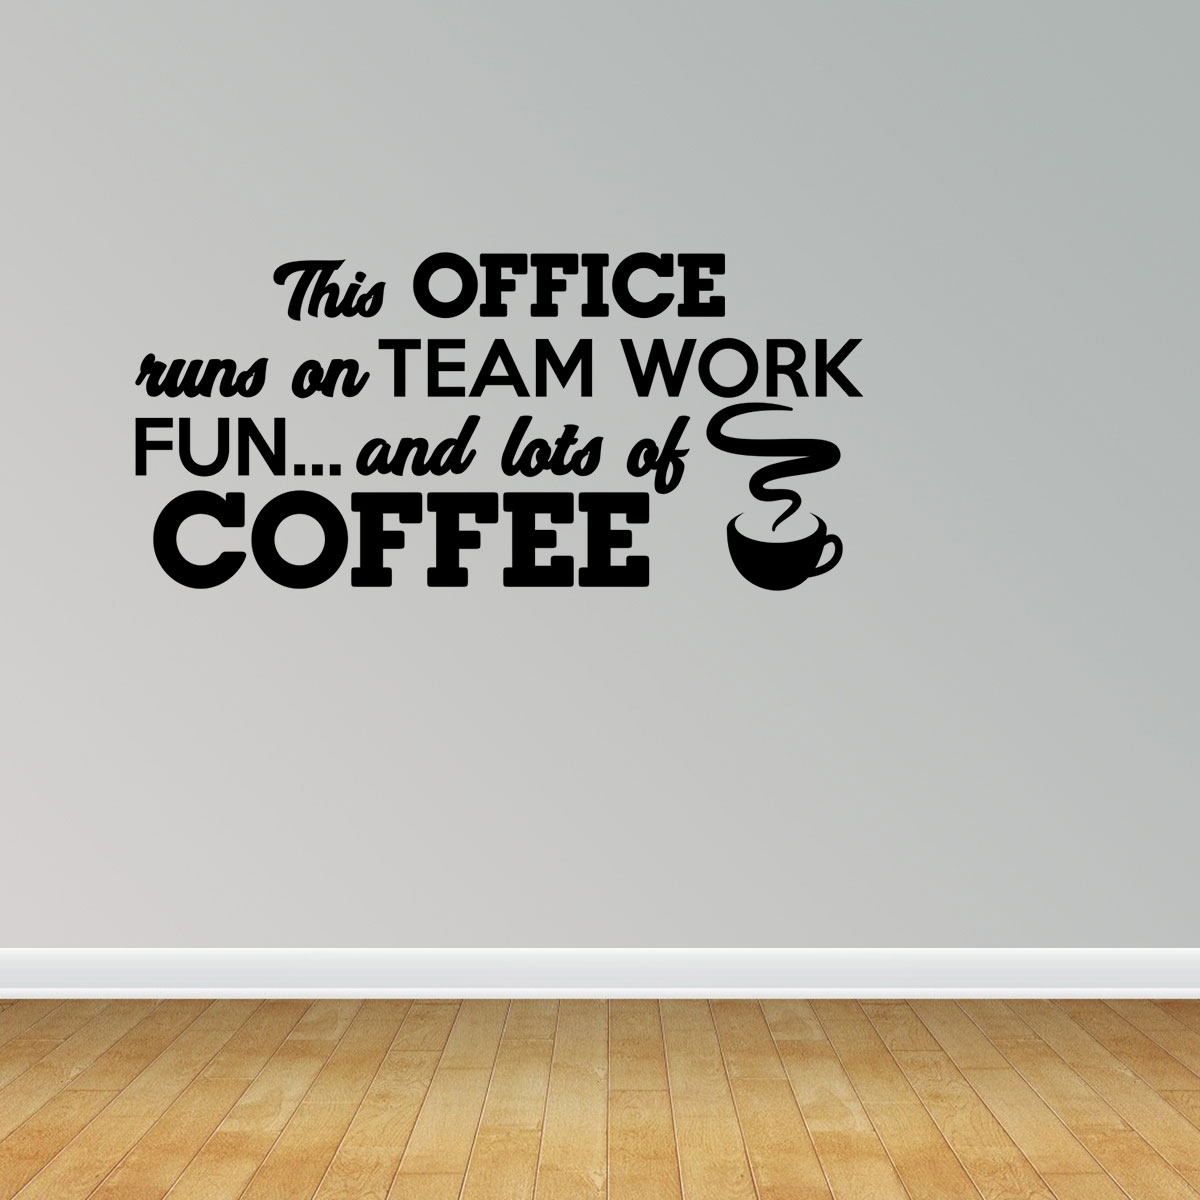 Office Runs On Teamwork And Coffee Break Room Decal Vinyl Wall Decals  Office Decal JP157